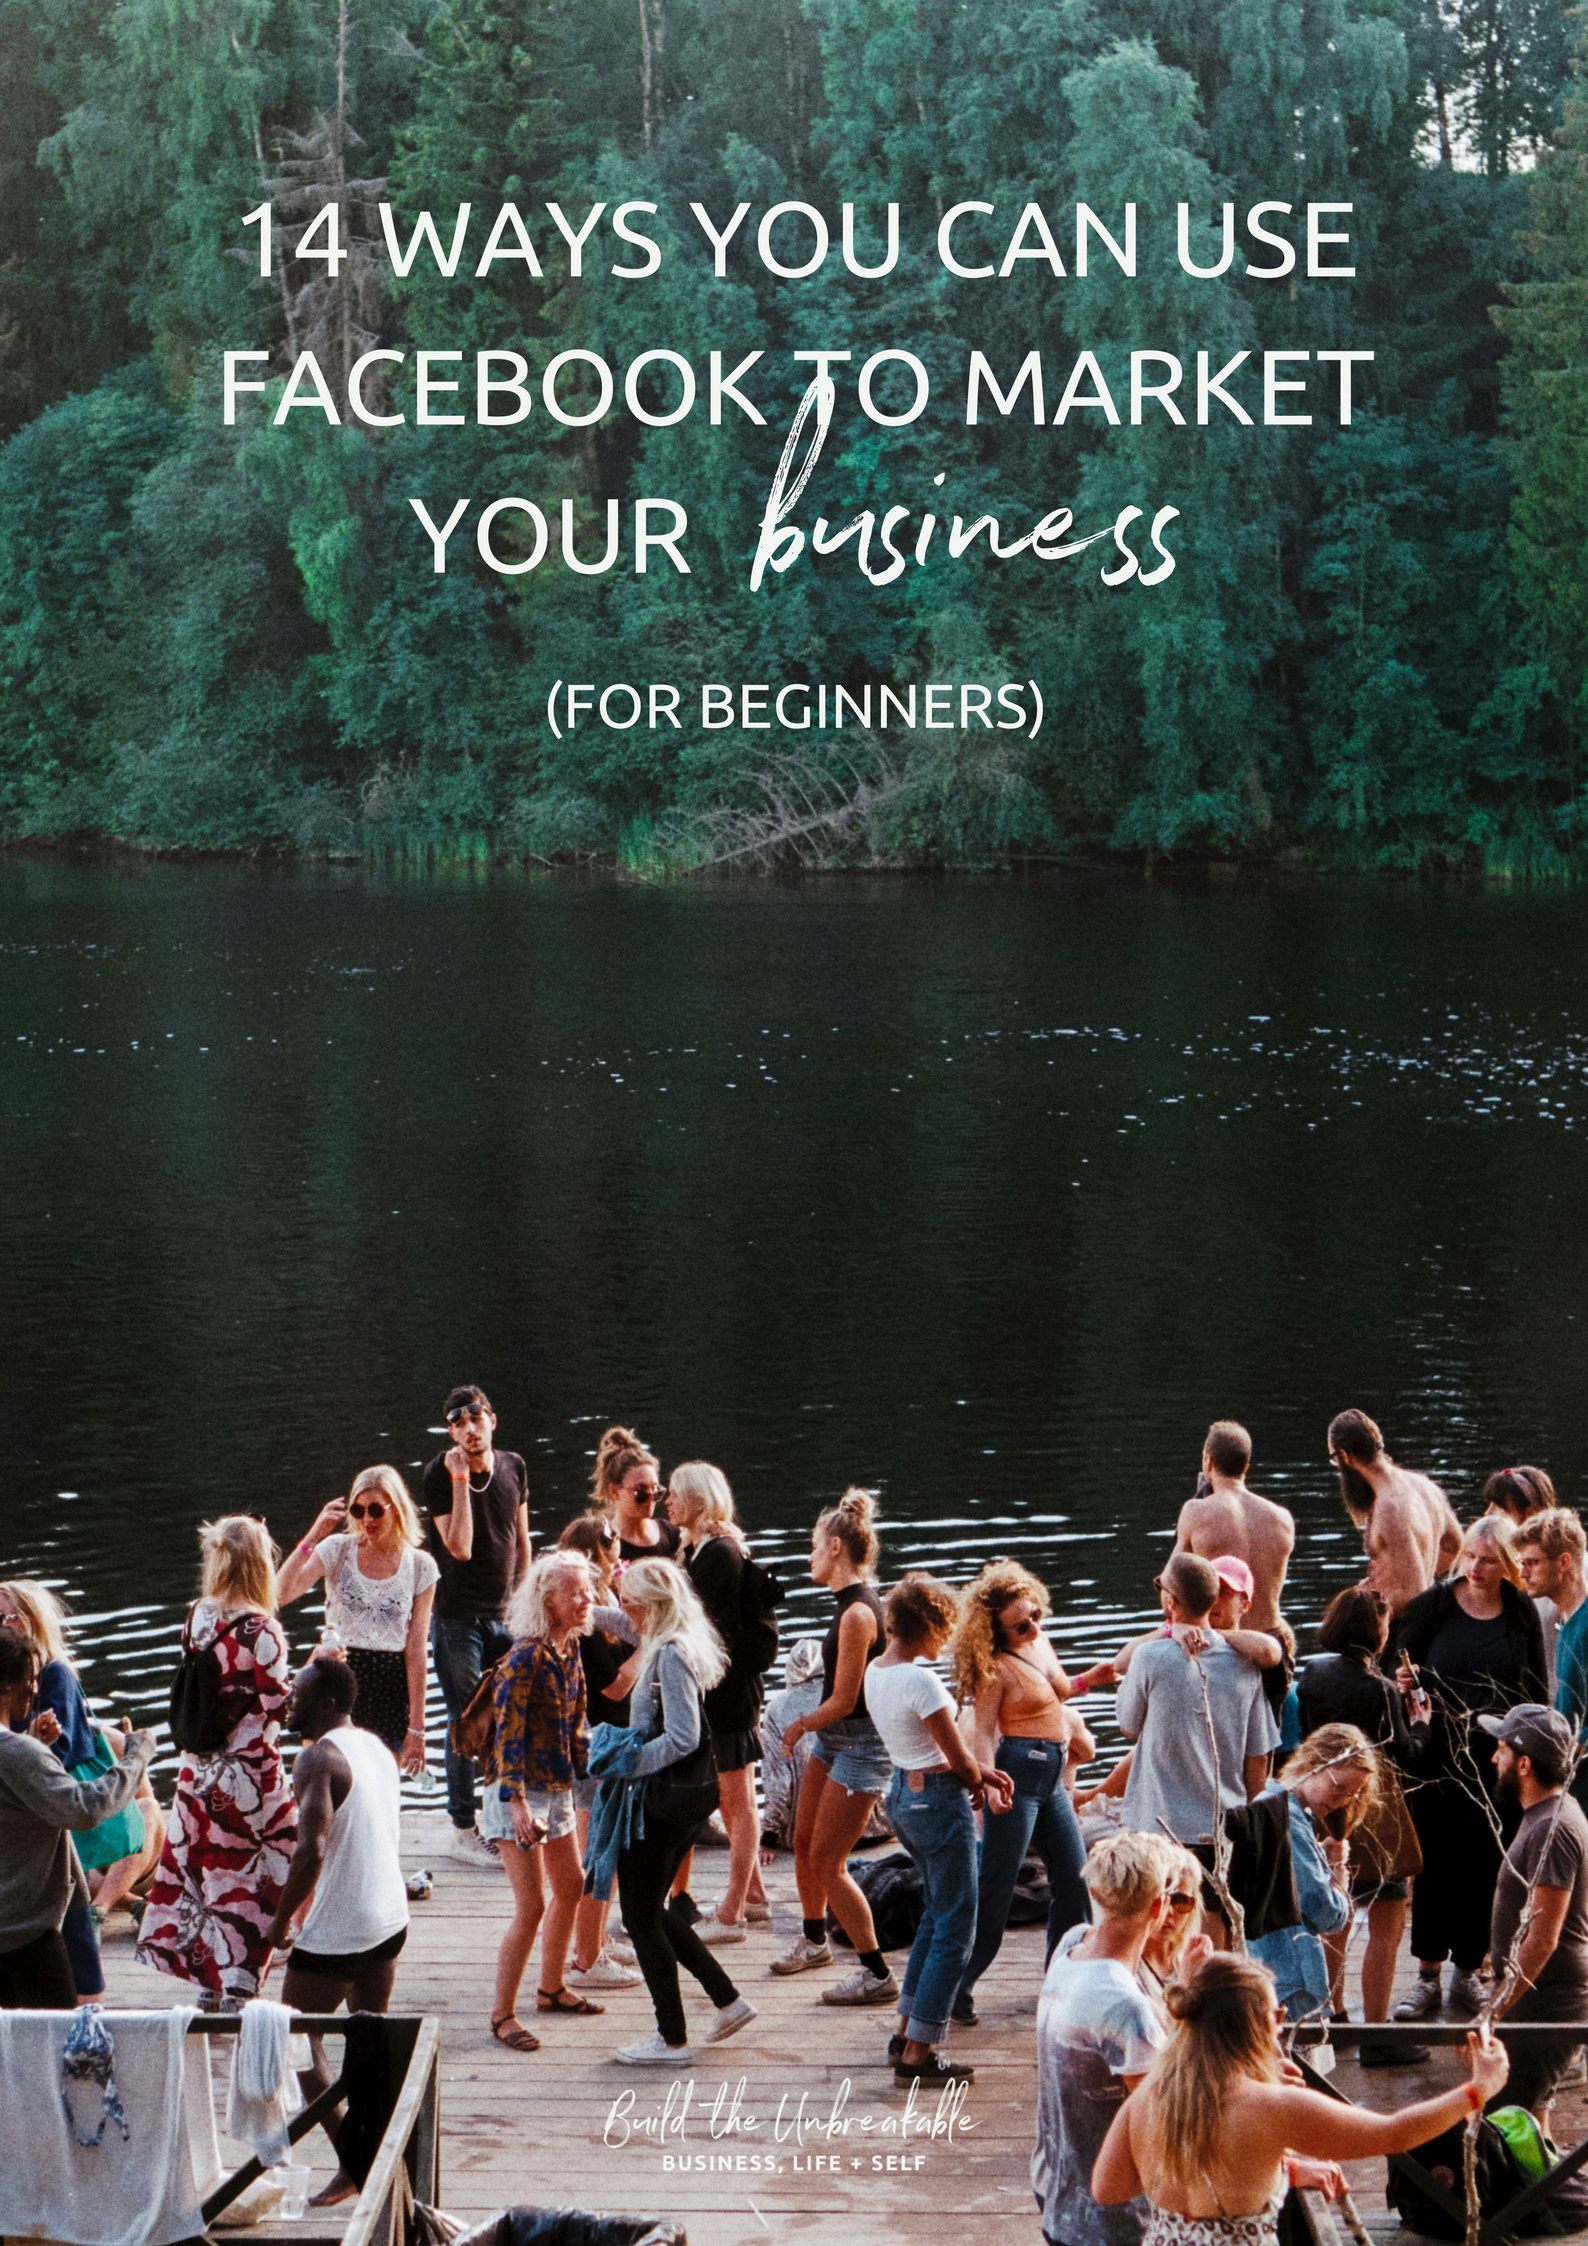 14 ways you can use Facebook to market your business (for beginners)